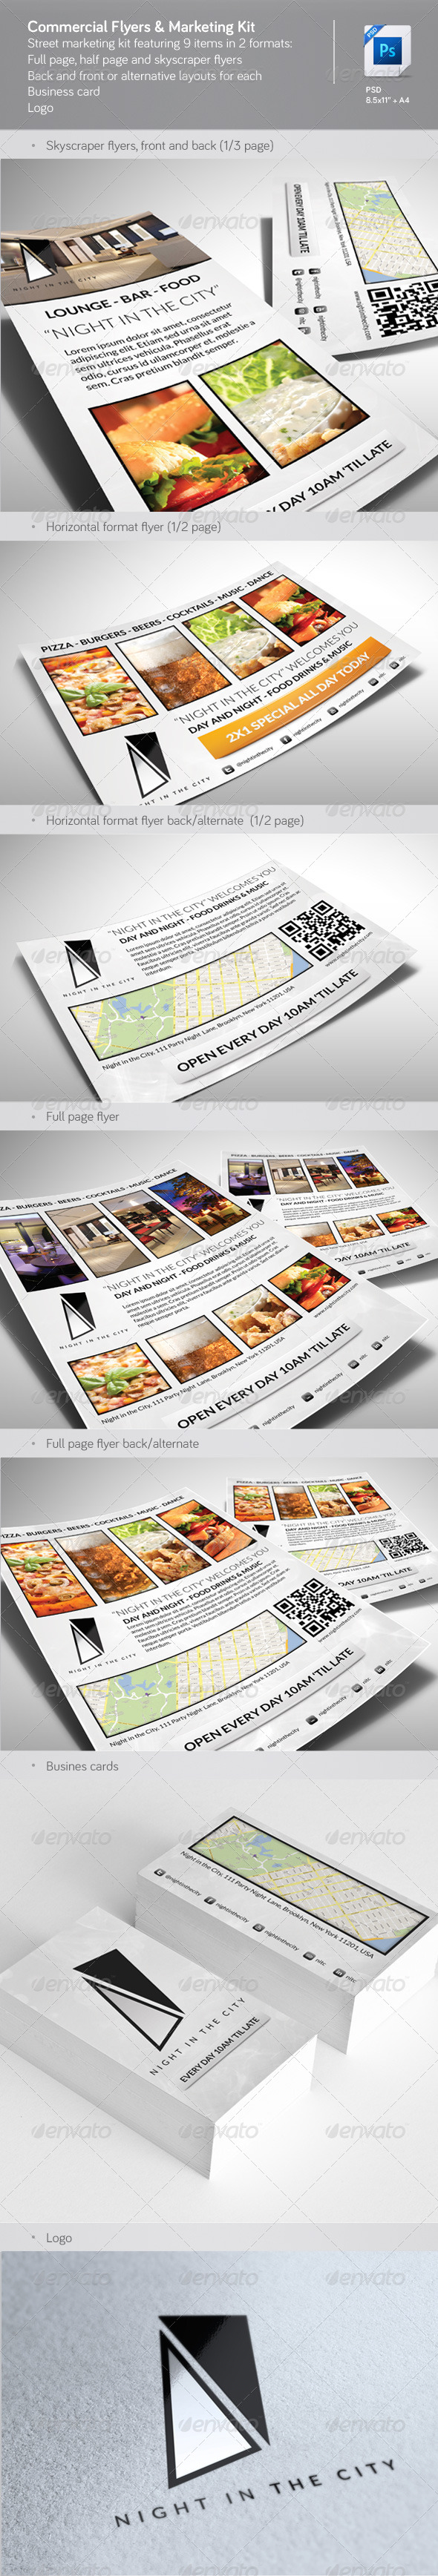 Commercial Flyers & Marketing Kit - Restaurant Flyers